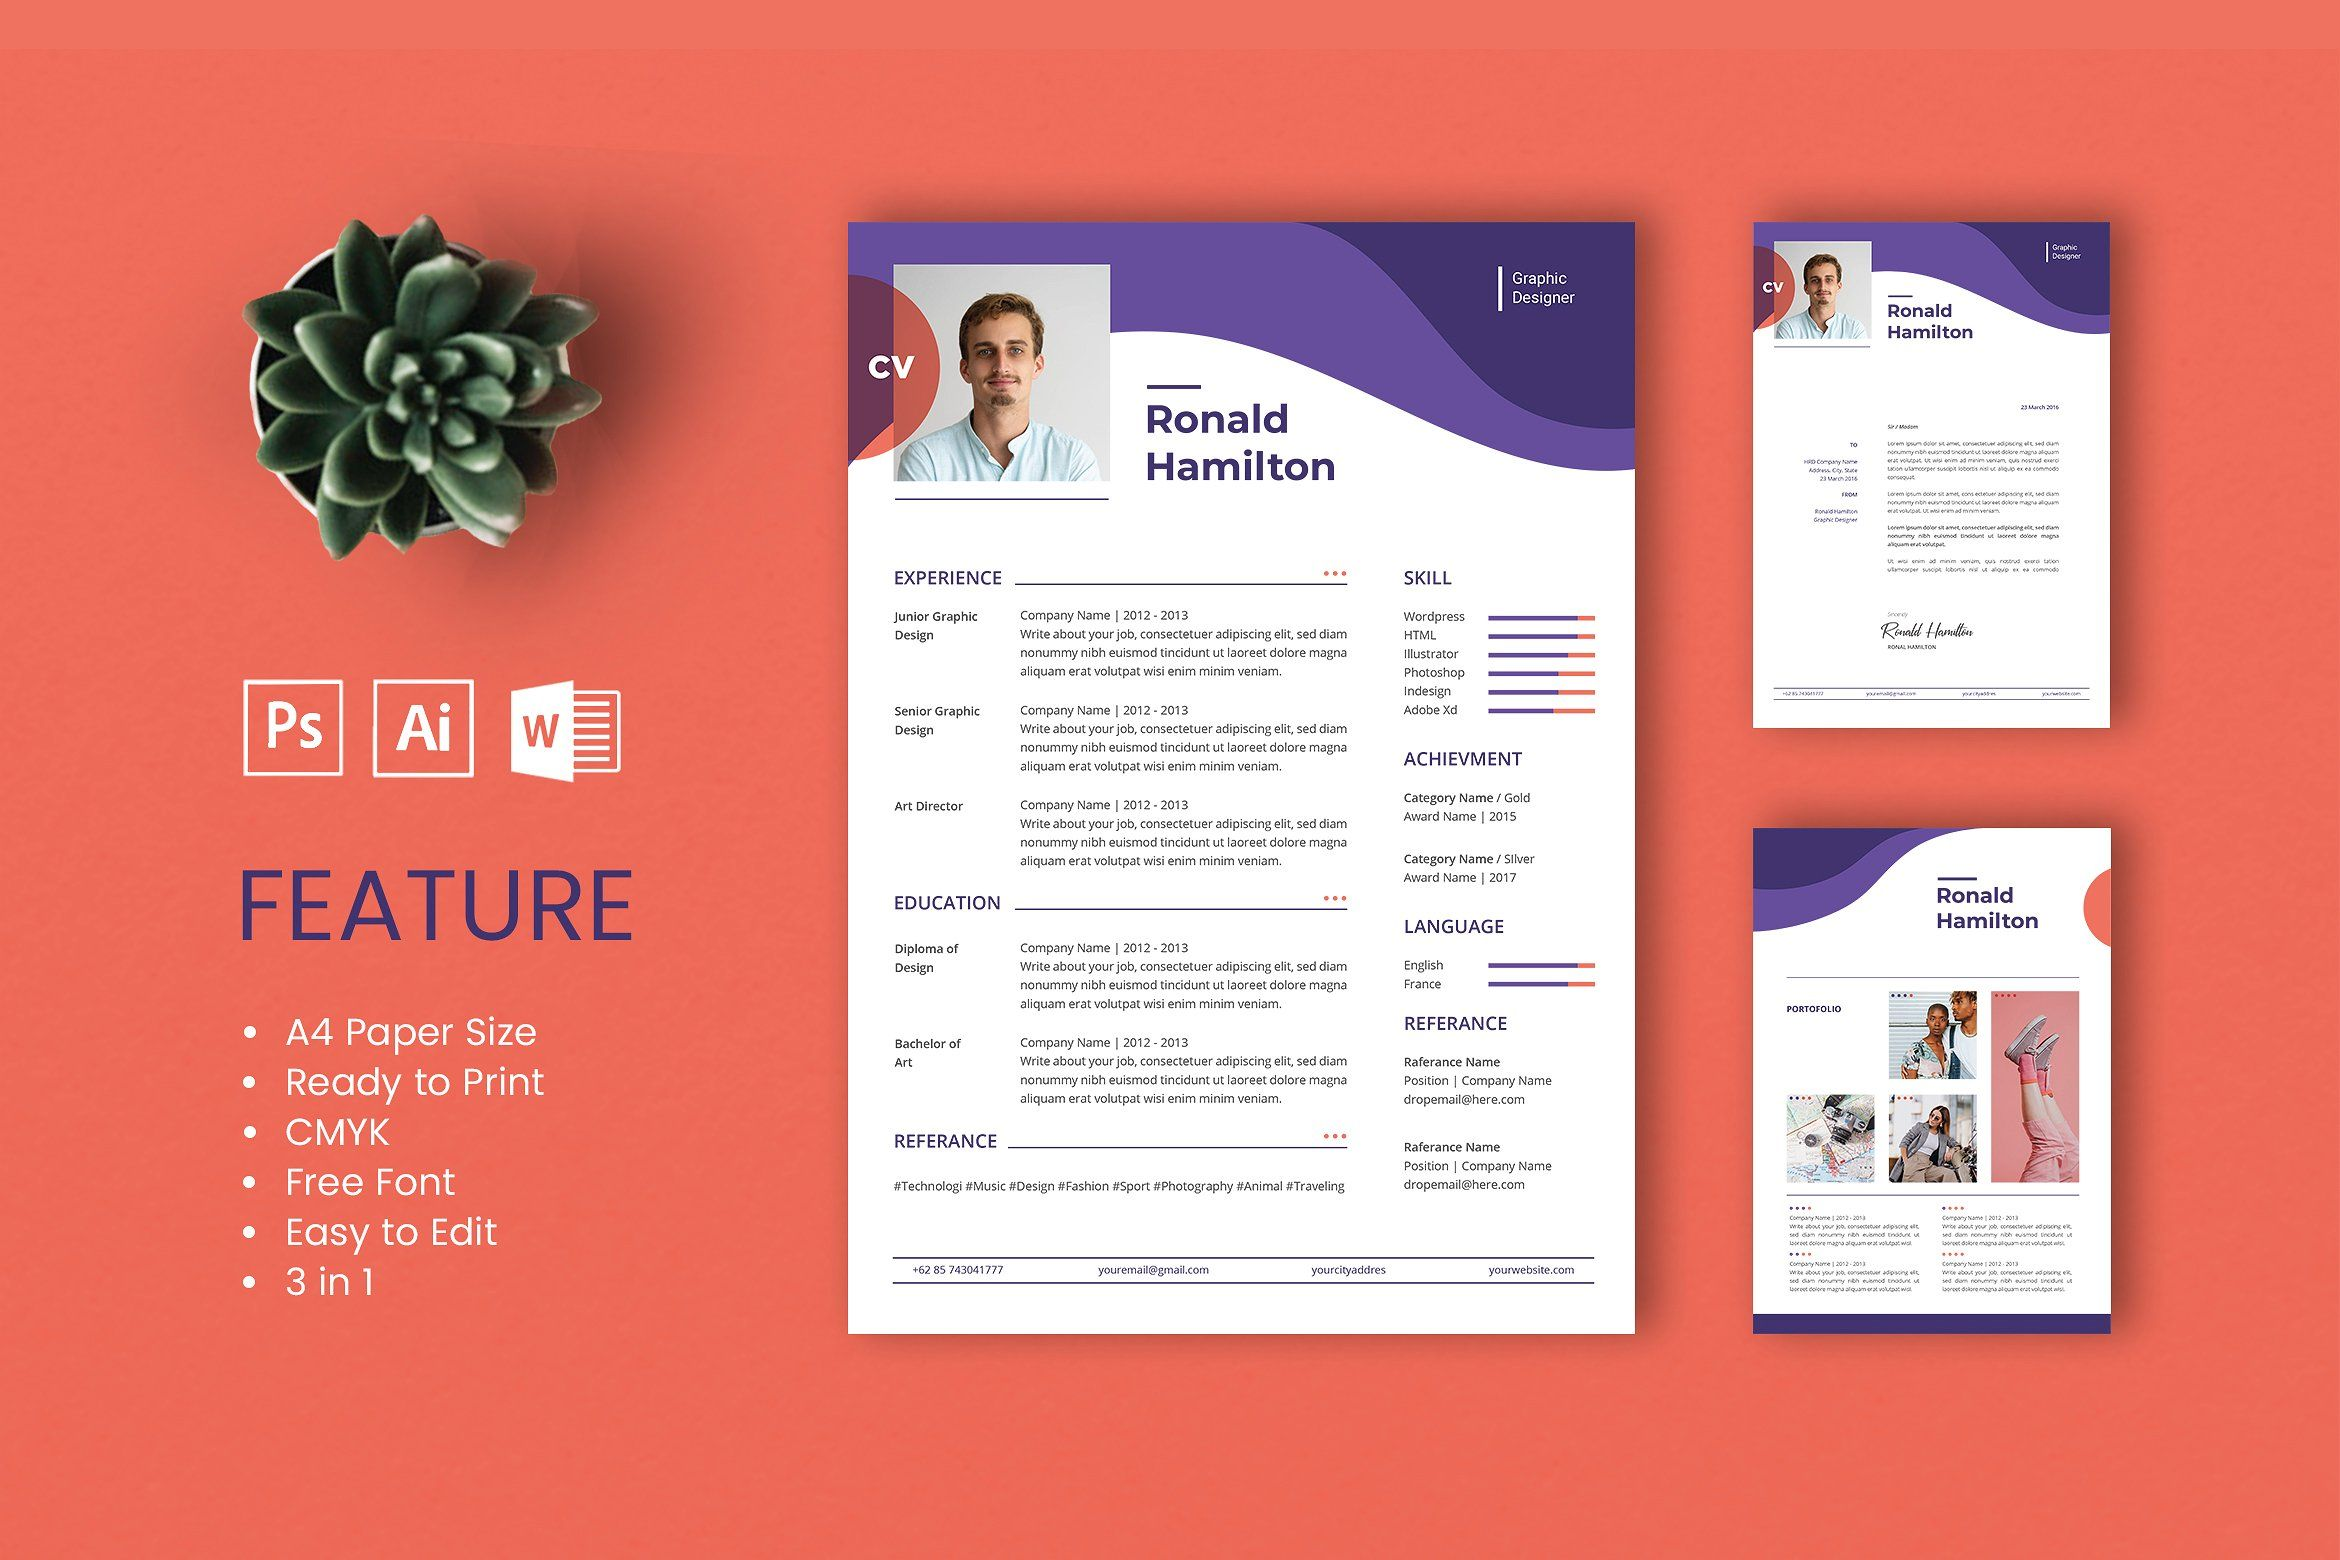 Professional Cv And Resume Template Resume Design Template Resume Template Professional Cv